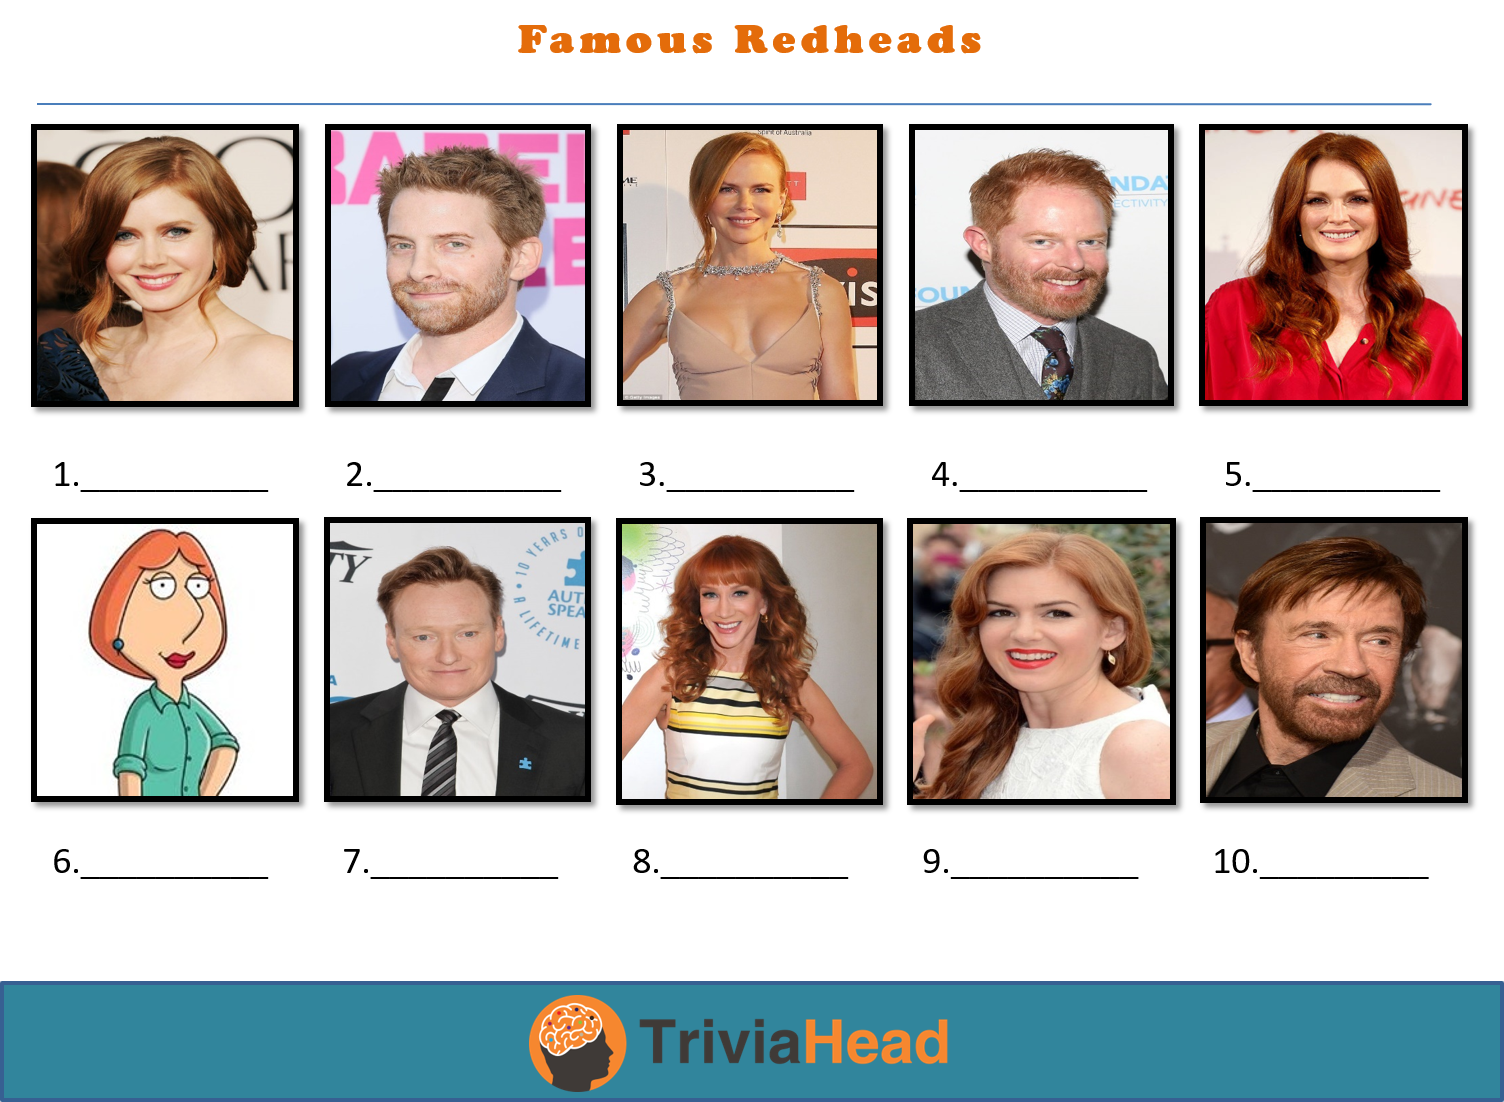 famous redheads trivia picture round picture quiz Trivia